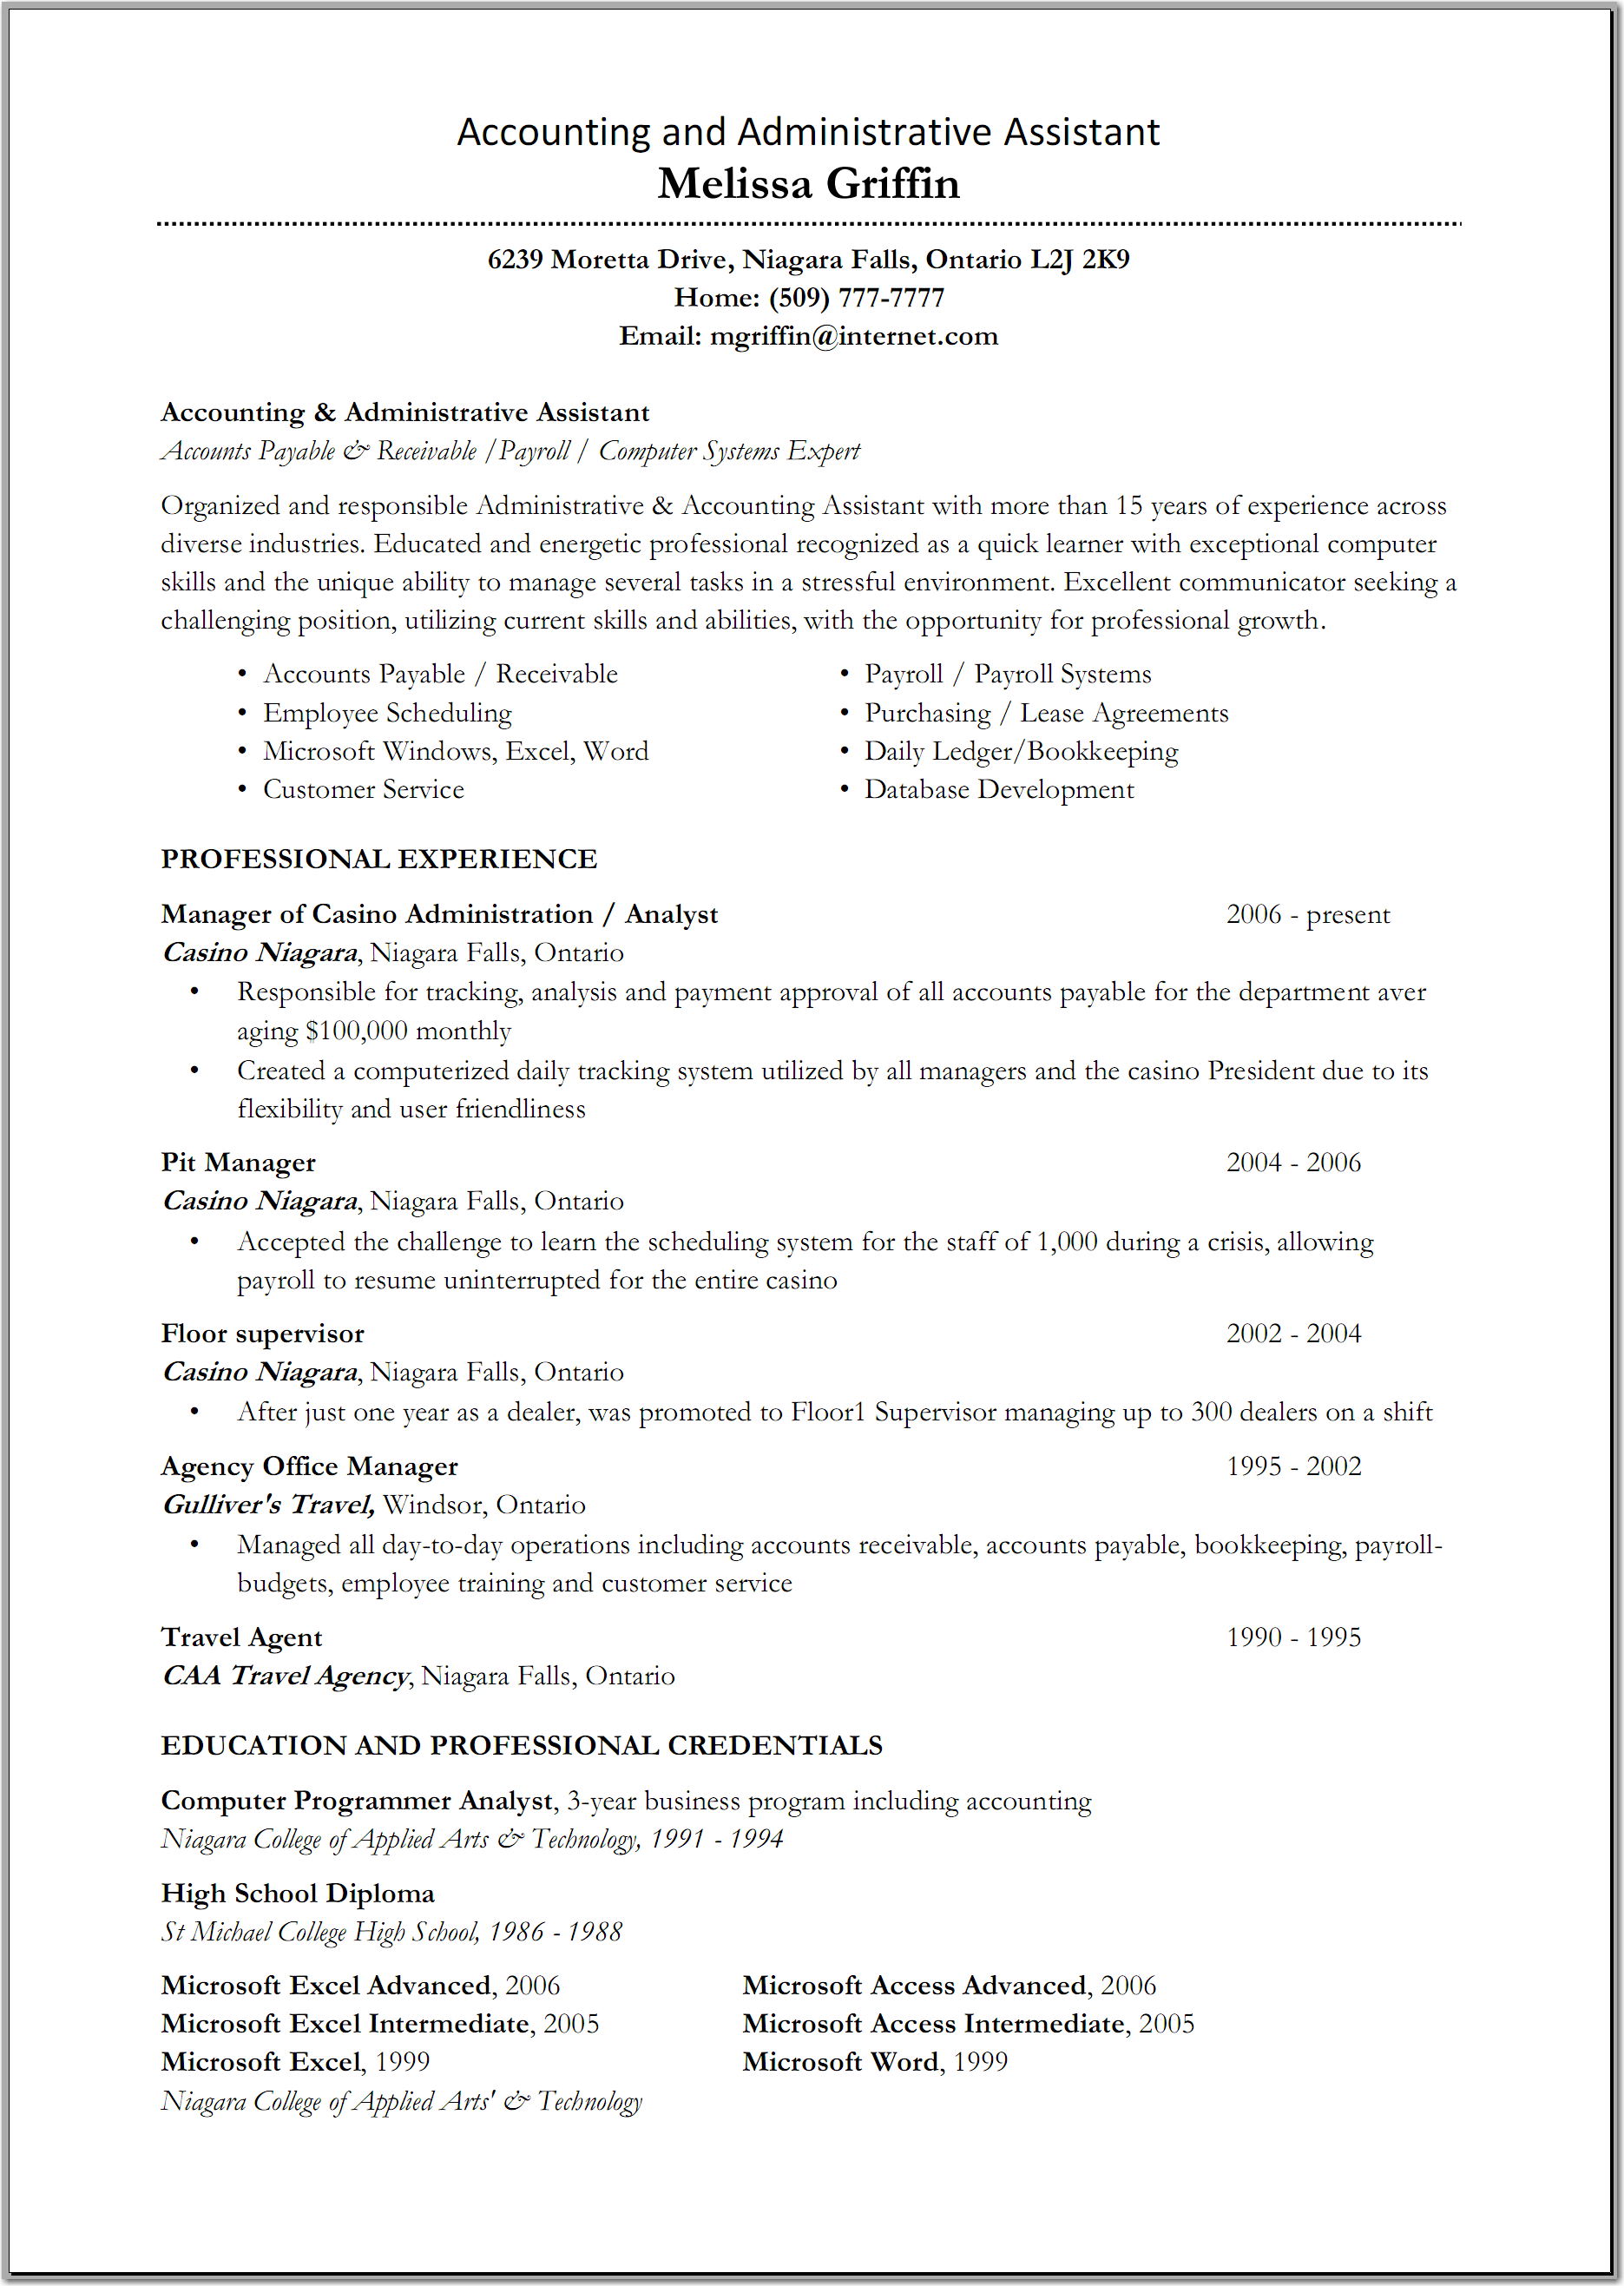 accountant resume sample for accounting professional cpa actuary accountant resume sample for accounting professional cpa actuary best images about resume entry level feminine